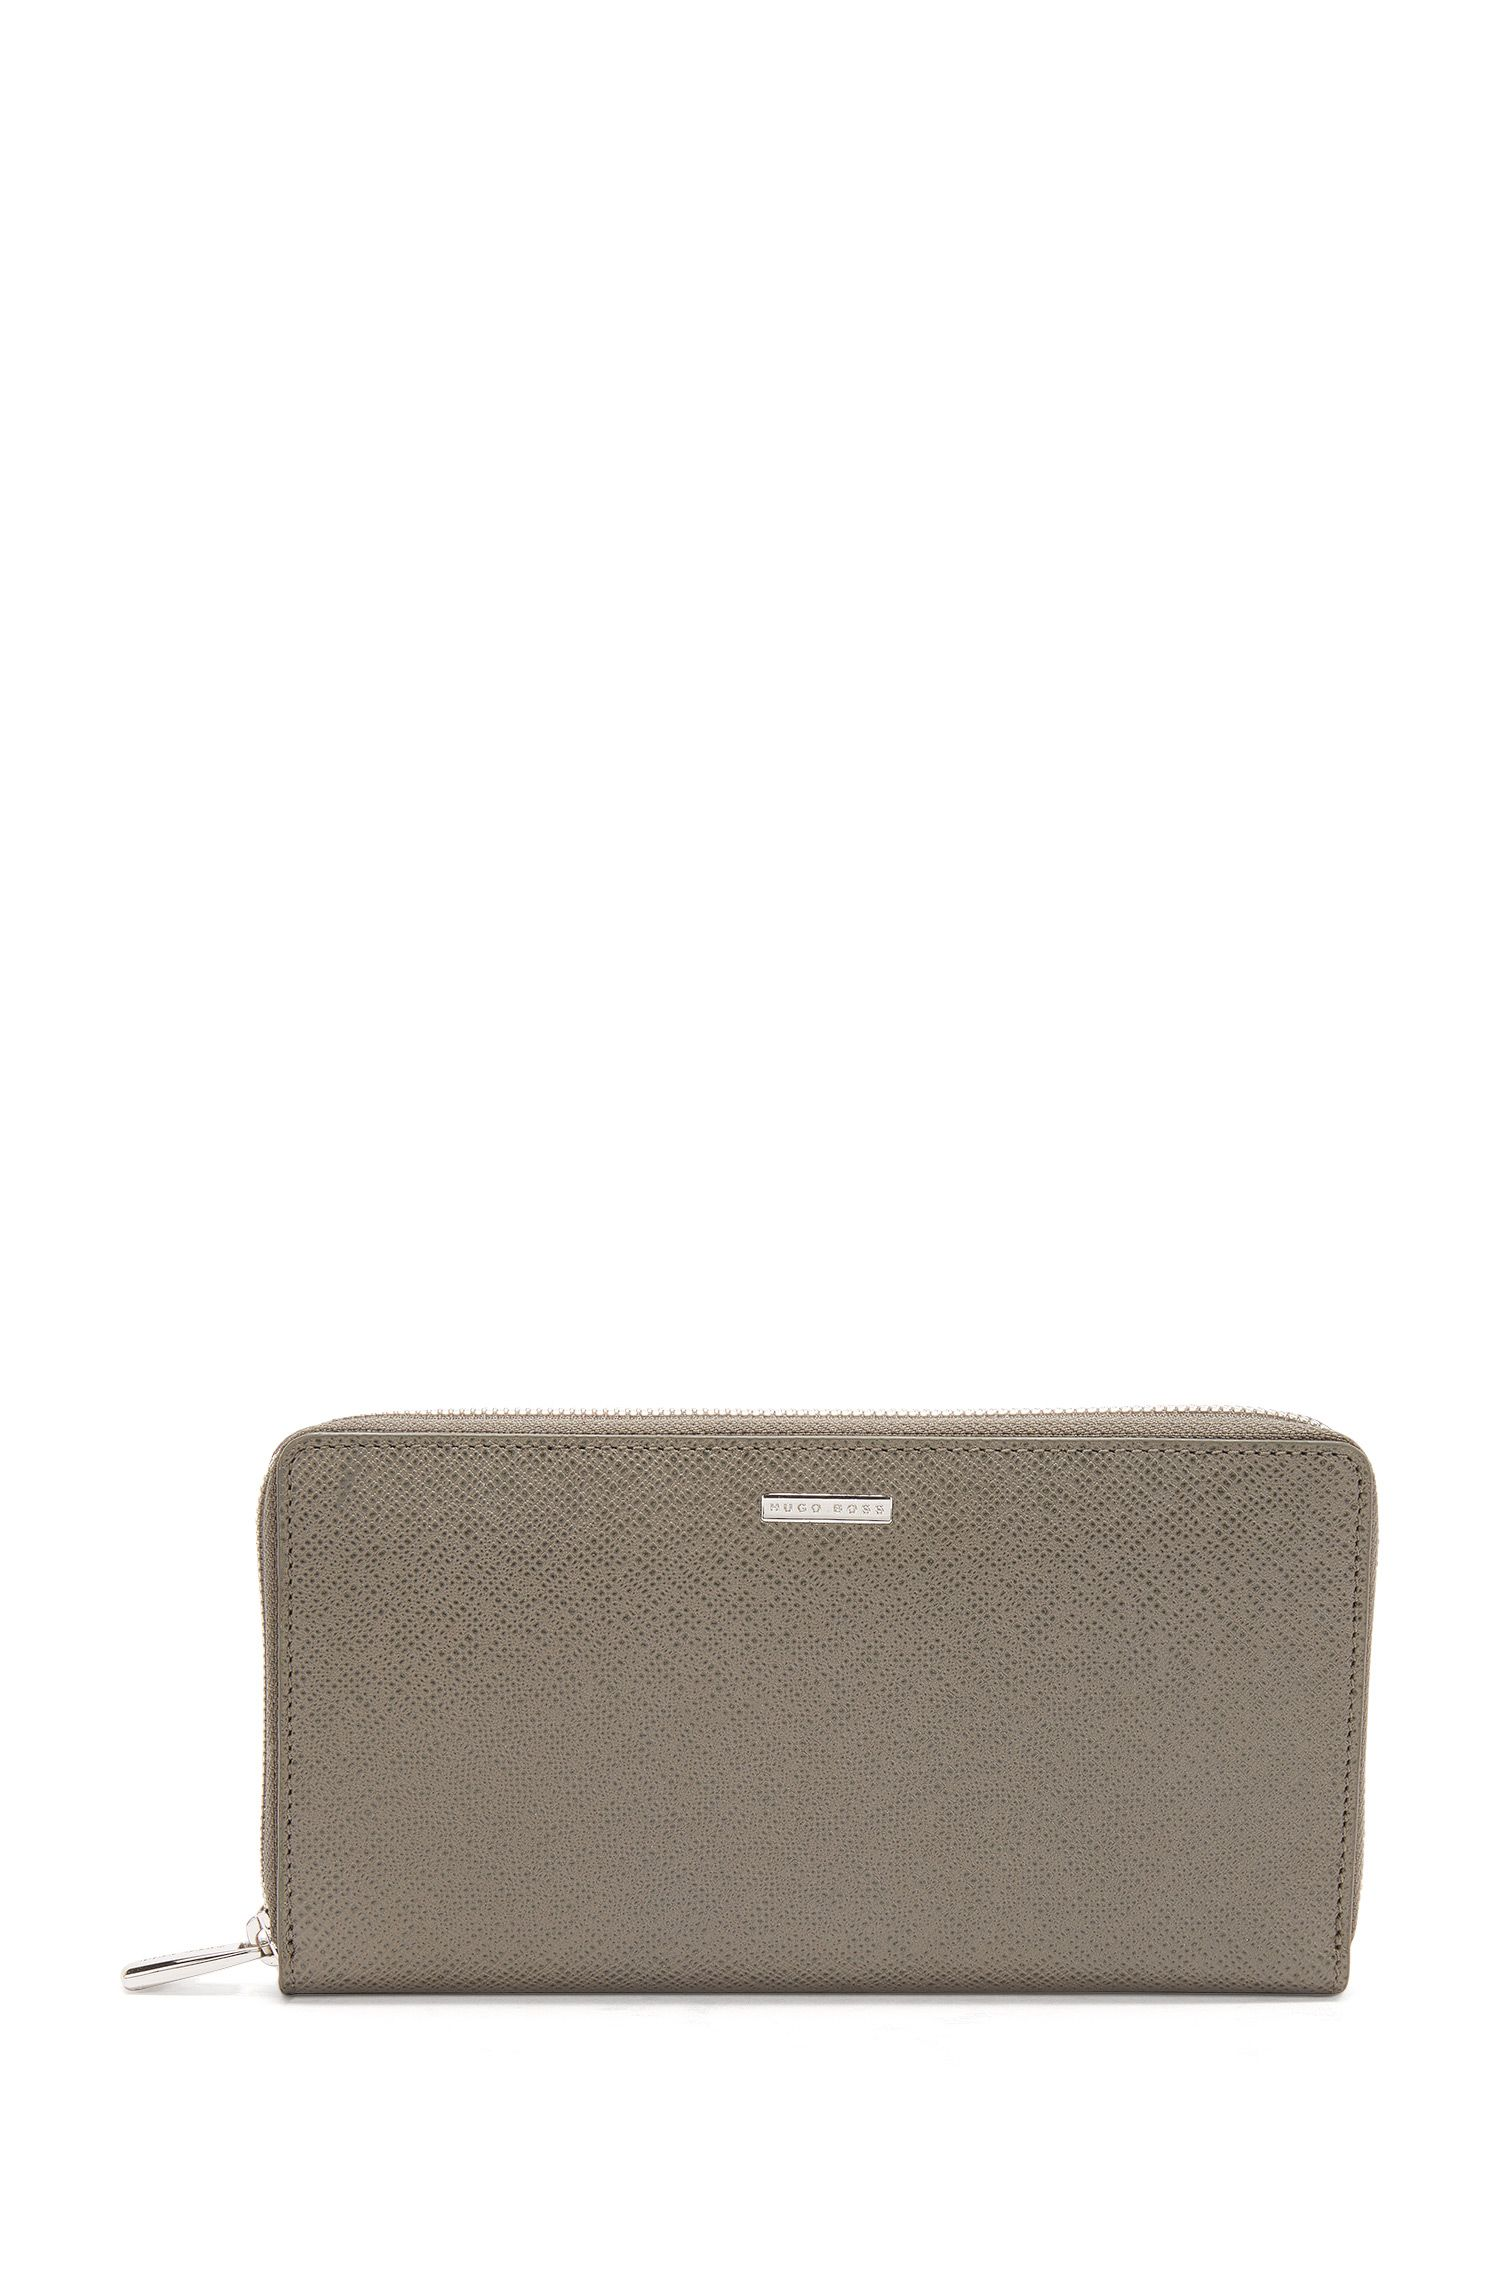 BOSS Signature Collection ziparound wallet in palmellato leather